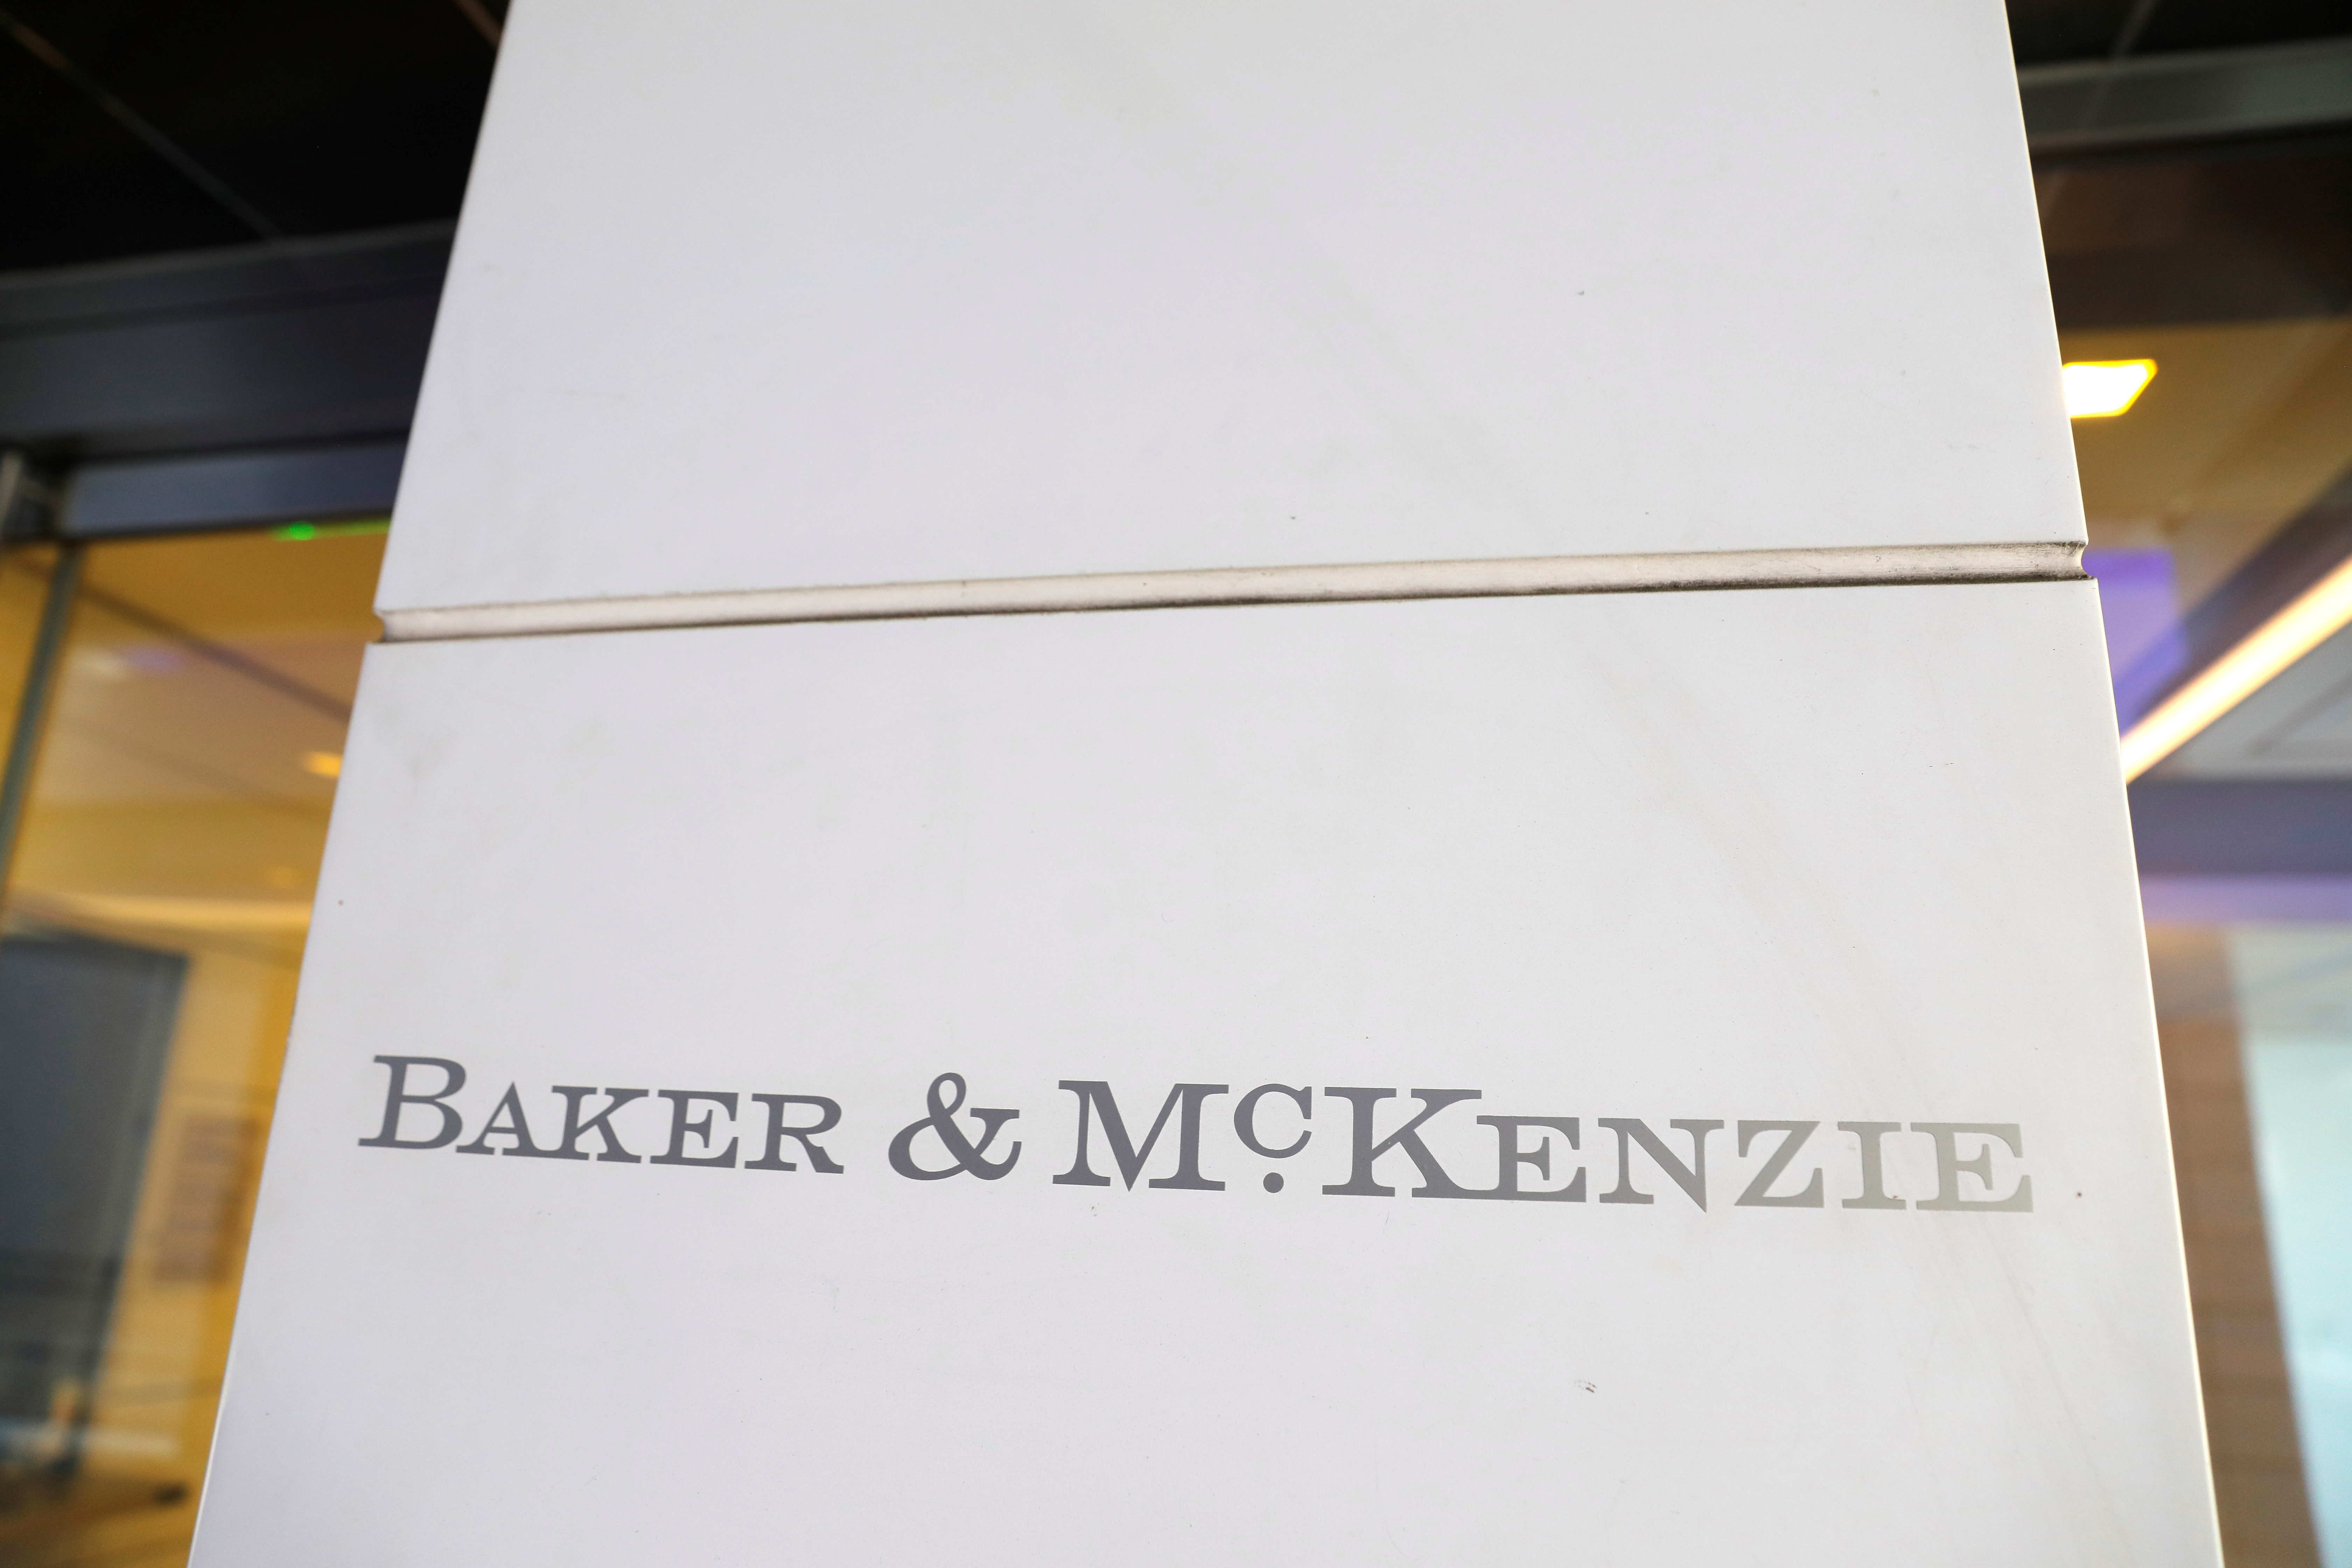 Baker McKenzie legal offices in Washington, D.C., U.S., May 10, 2021. REUTERS/Andrew Kelly